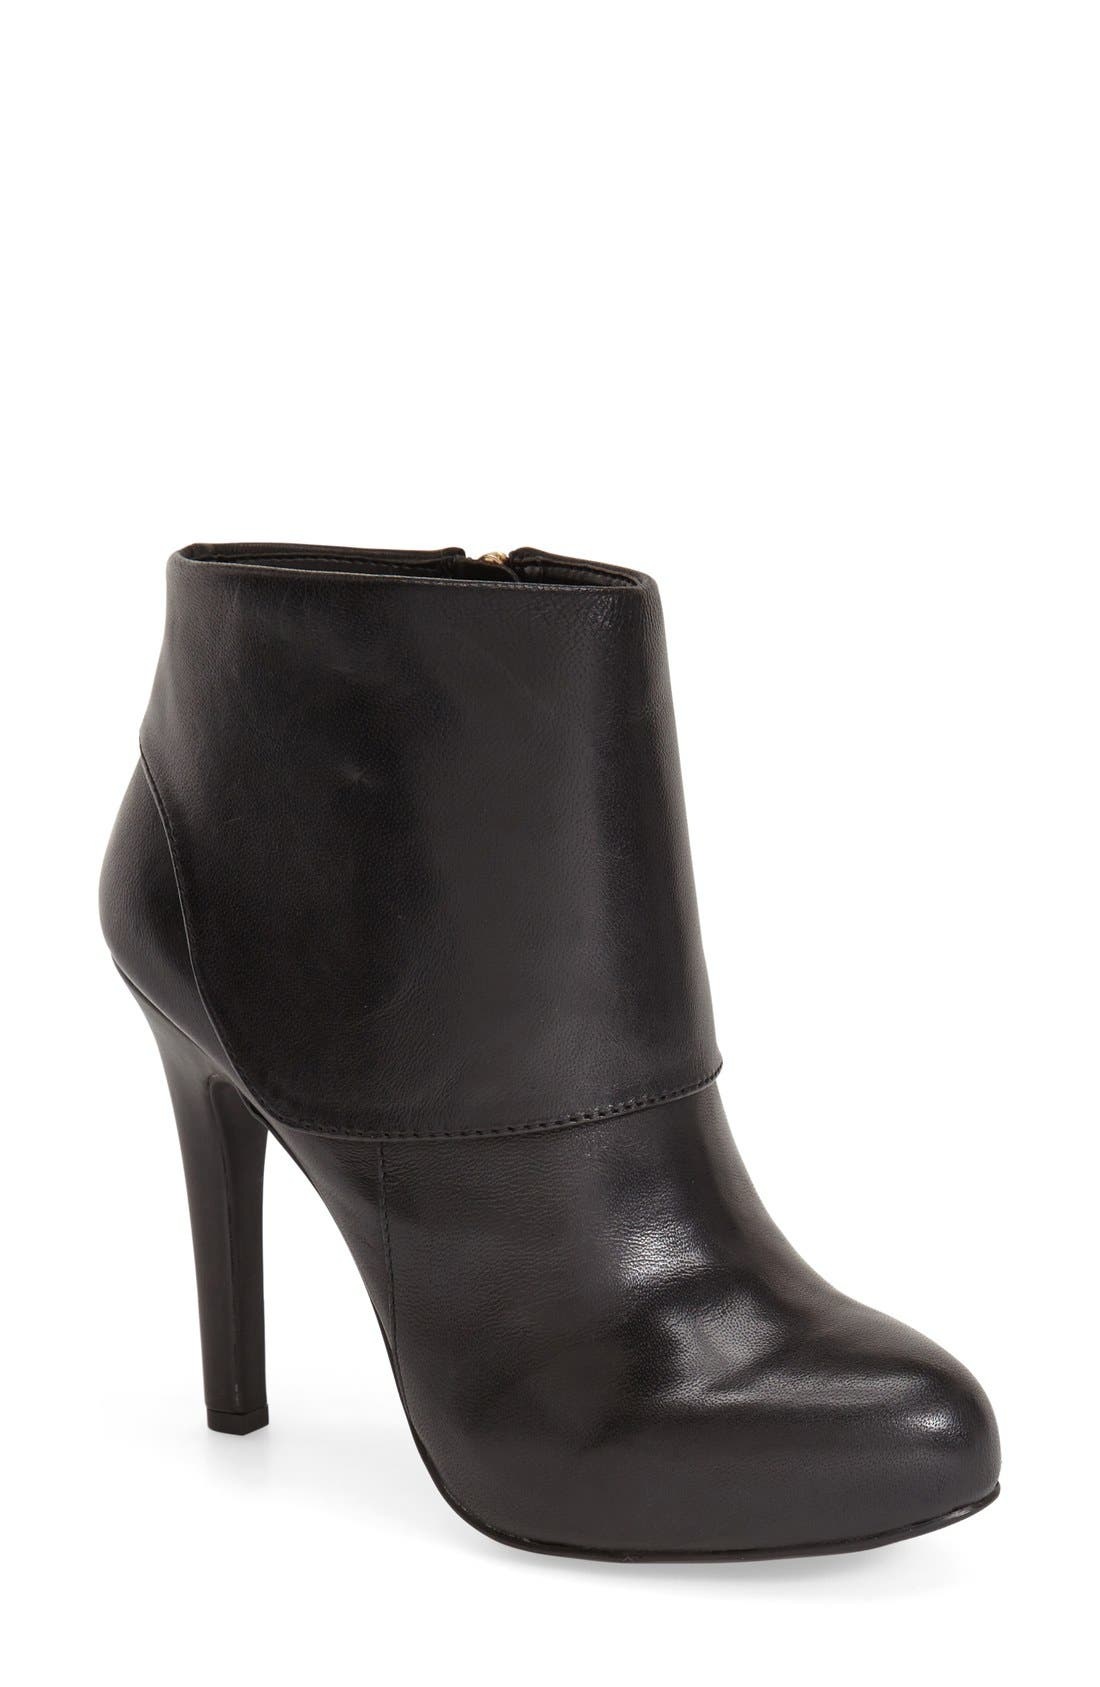 Alternate Image 1 Selected - Jessica Simpson 'Addey' Platform Bootie (Women)